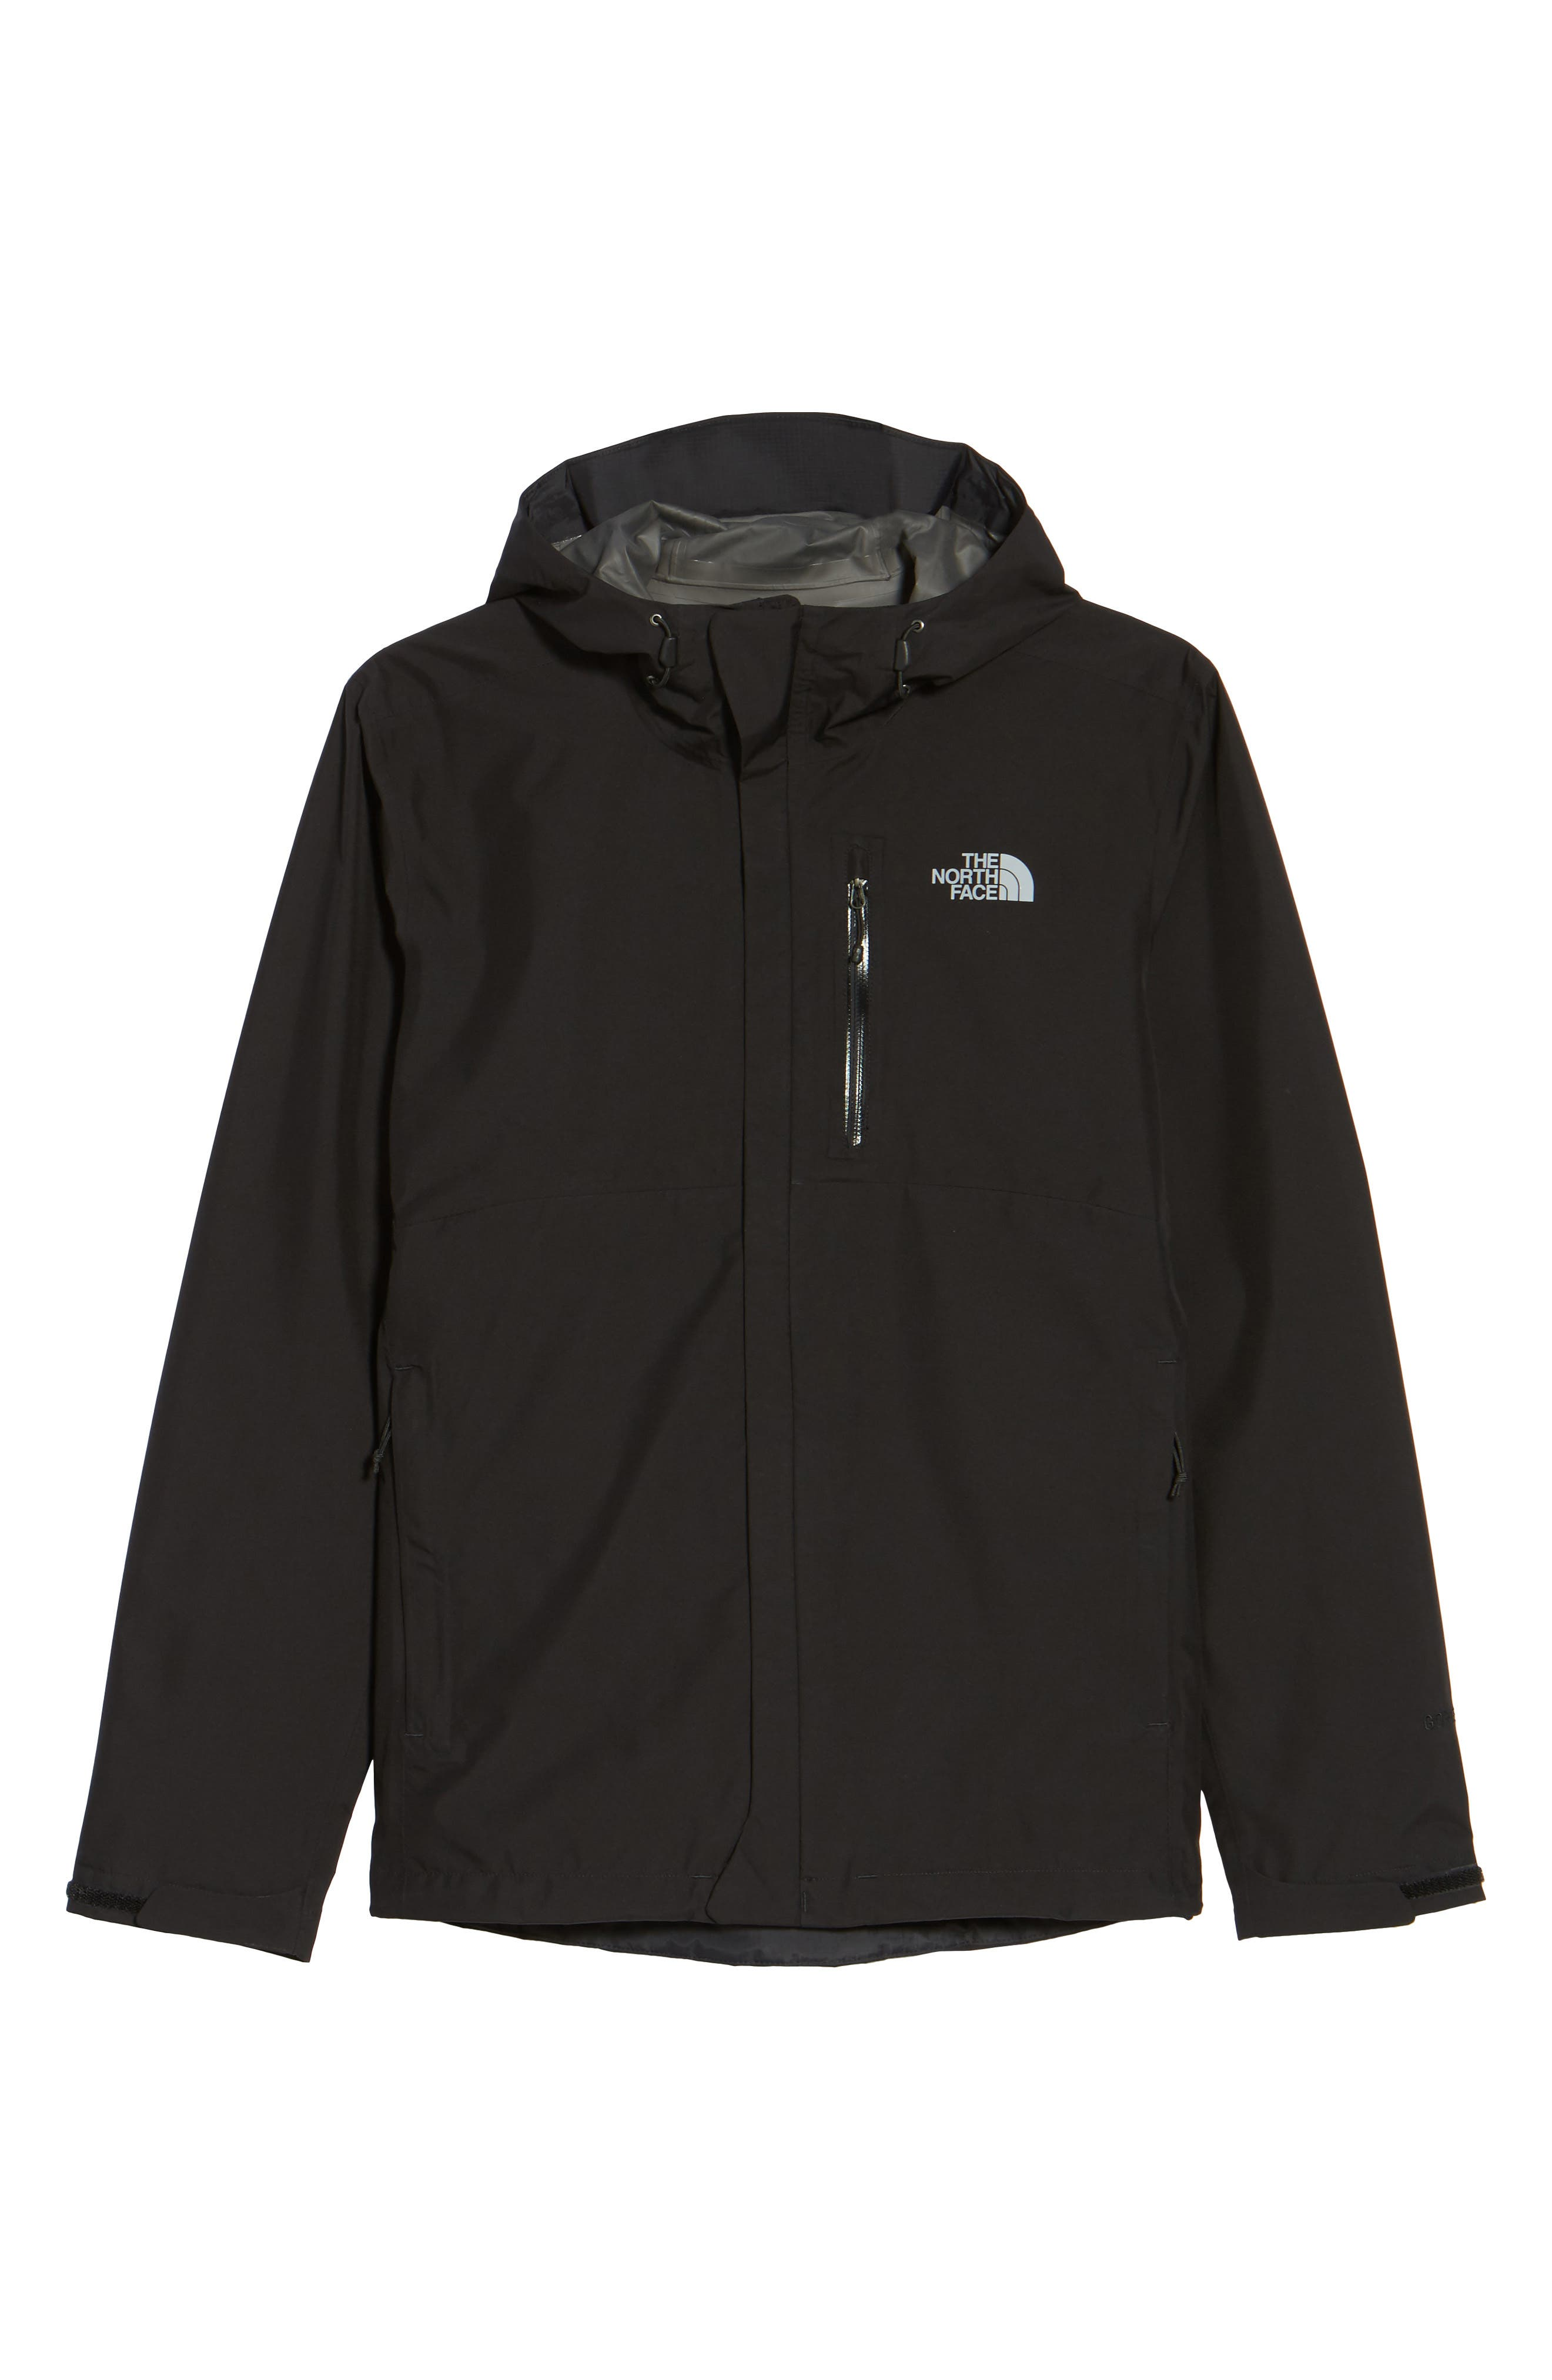 Dryzzle Gore-Tex<sup>®</sup> PacLite Hooded Jacket,                             Alternate thumbnail 5, color,                             001